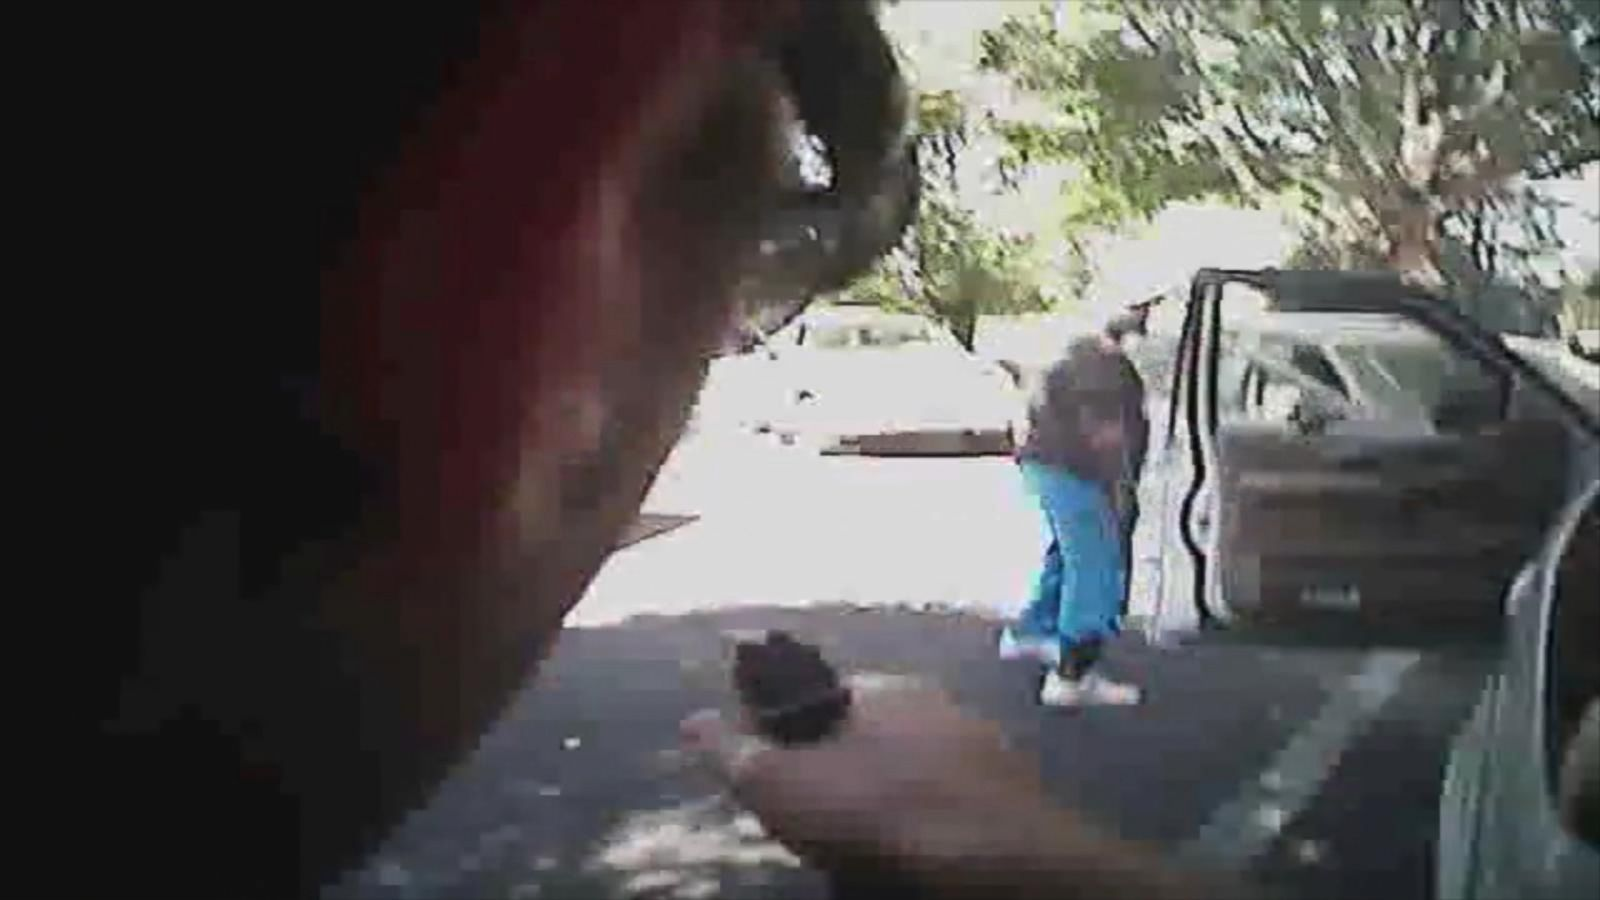 VIDEO: Police Body Camera Video of Fatal Shooting of Charlotte Man